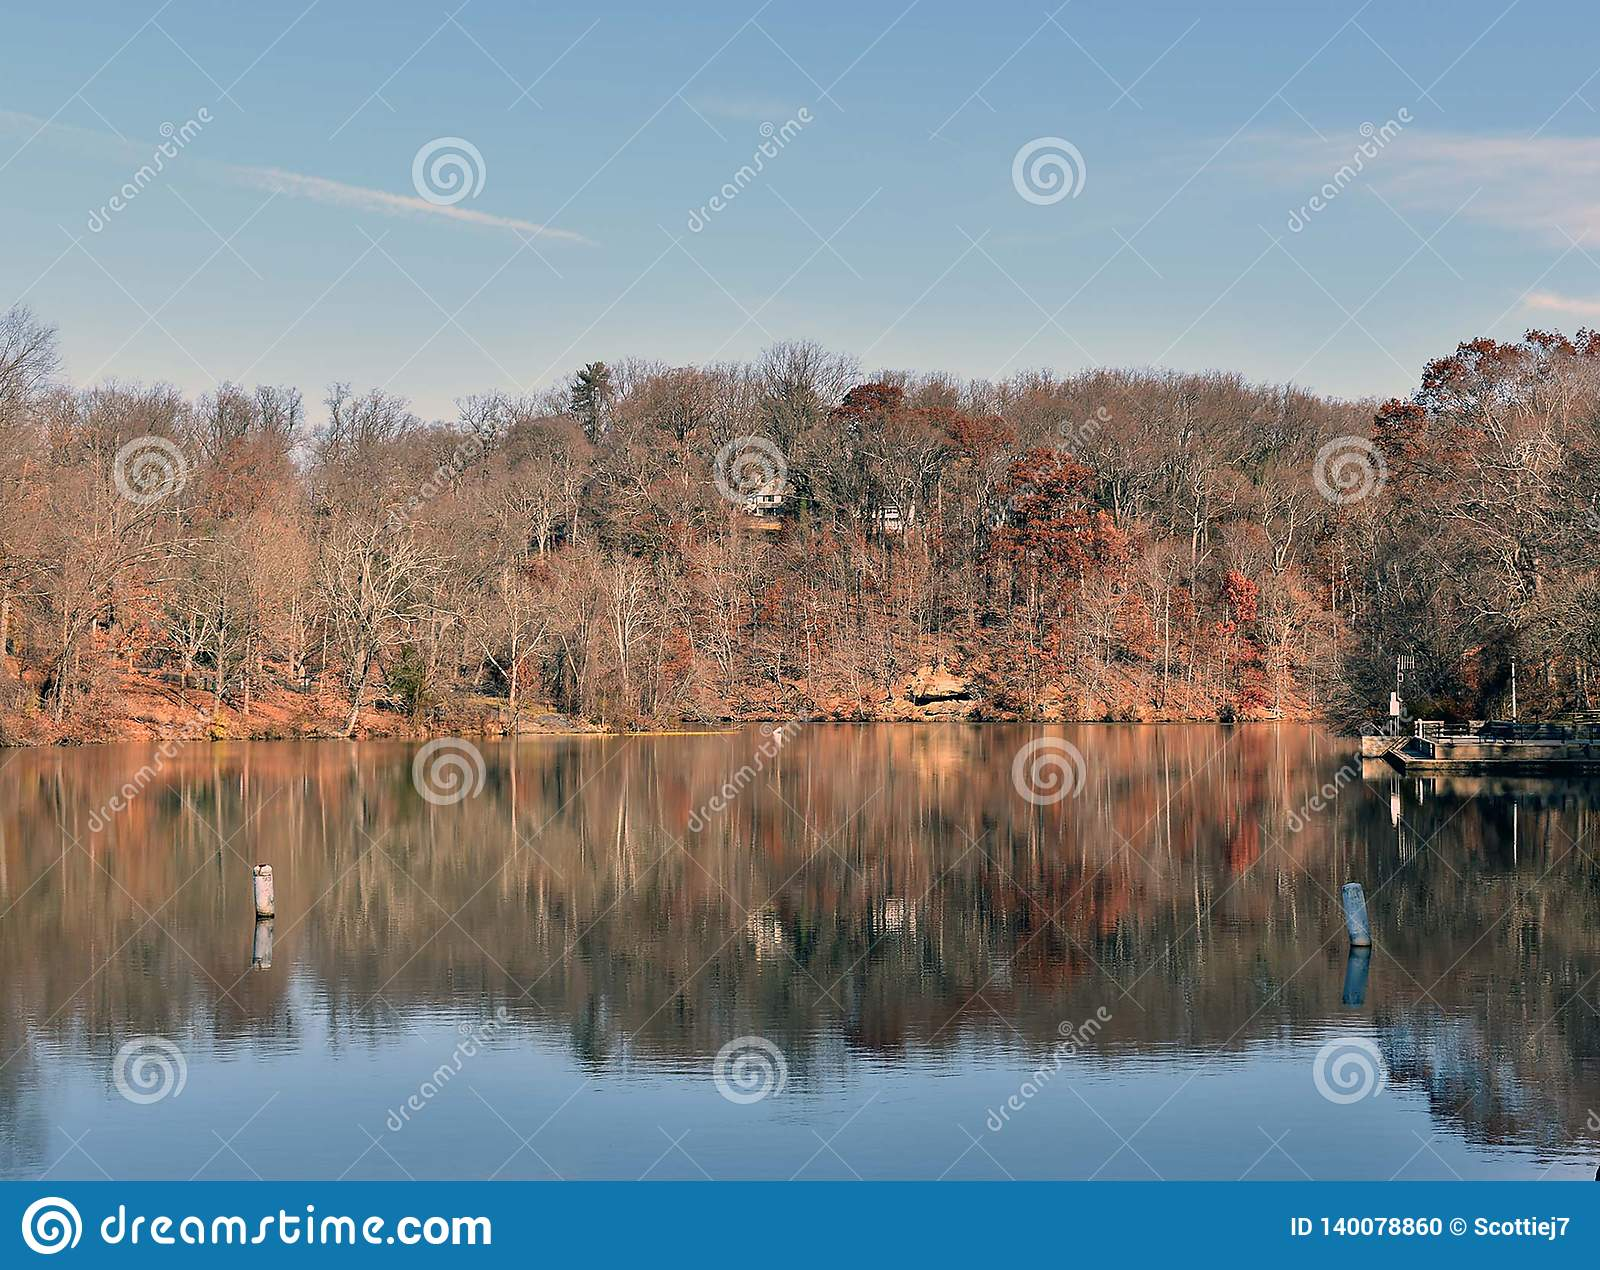 A view of a lake on a fall day